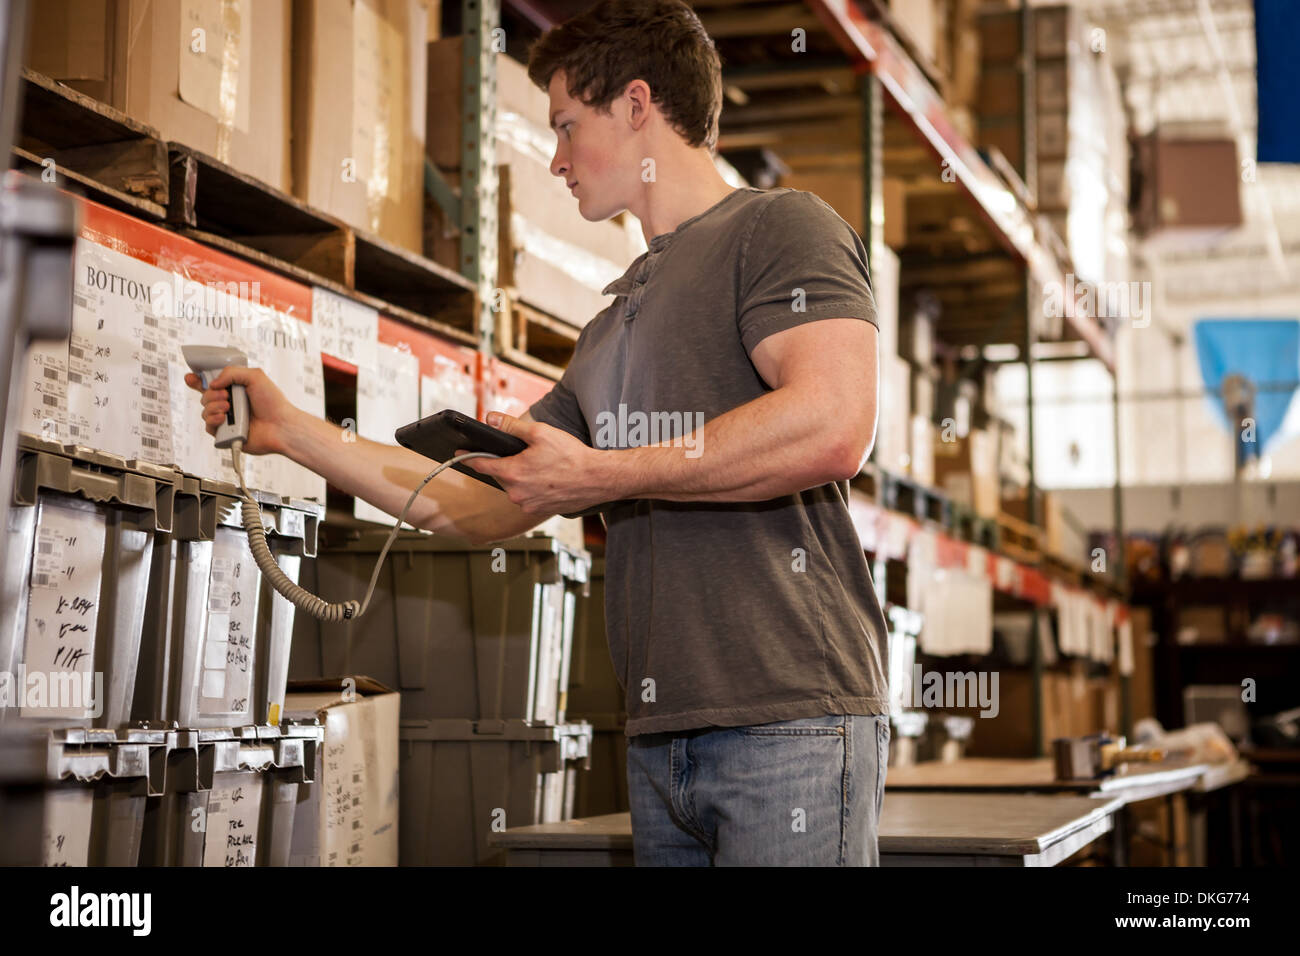 Worker in warehouse scanning barcode on cardboard box - Stock Image